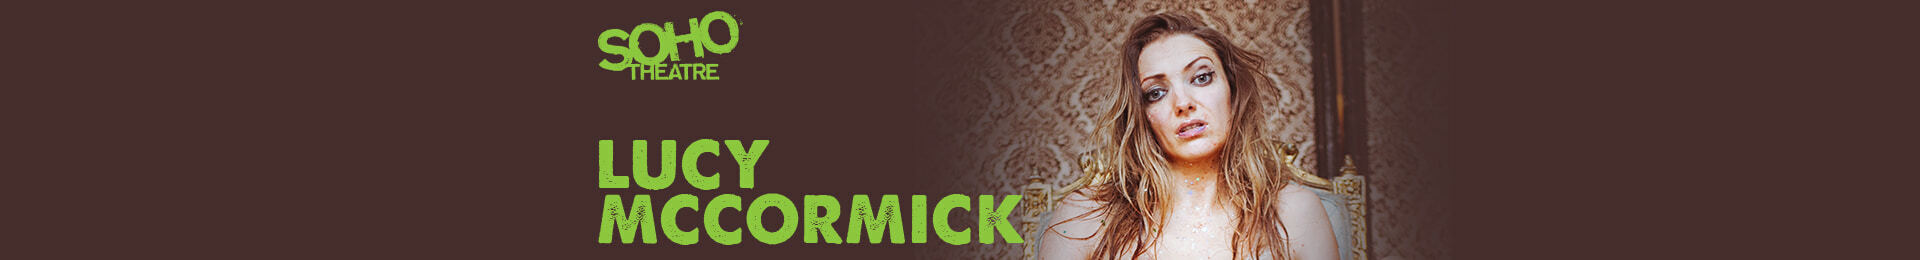 Lucy McCormick: Post Popular banner image